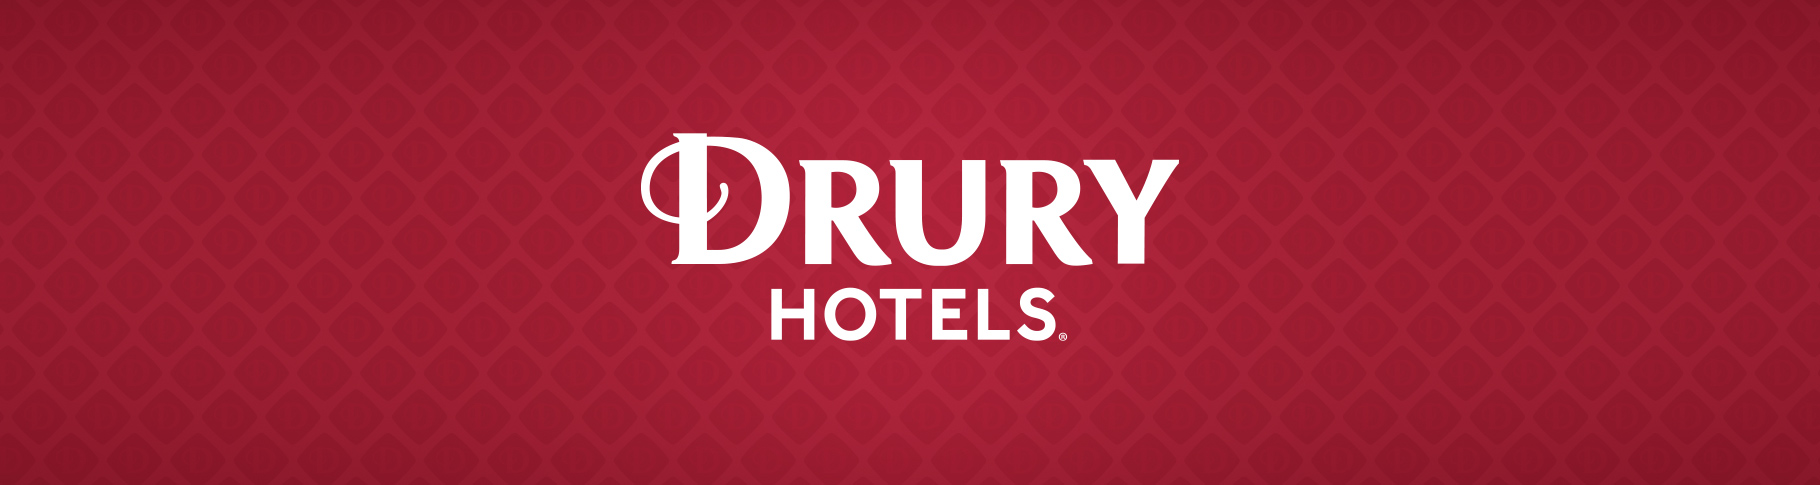 Drury Hotels logo on a red patterned background